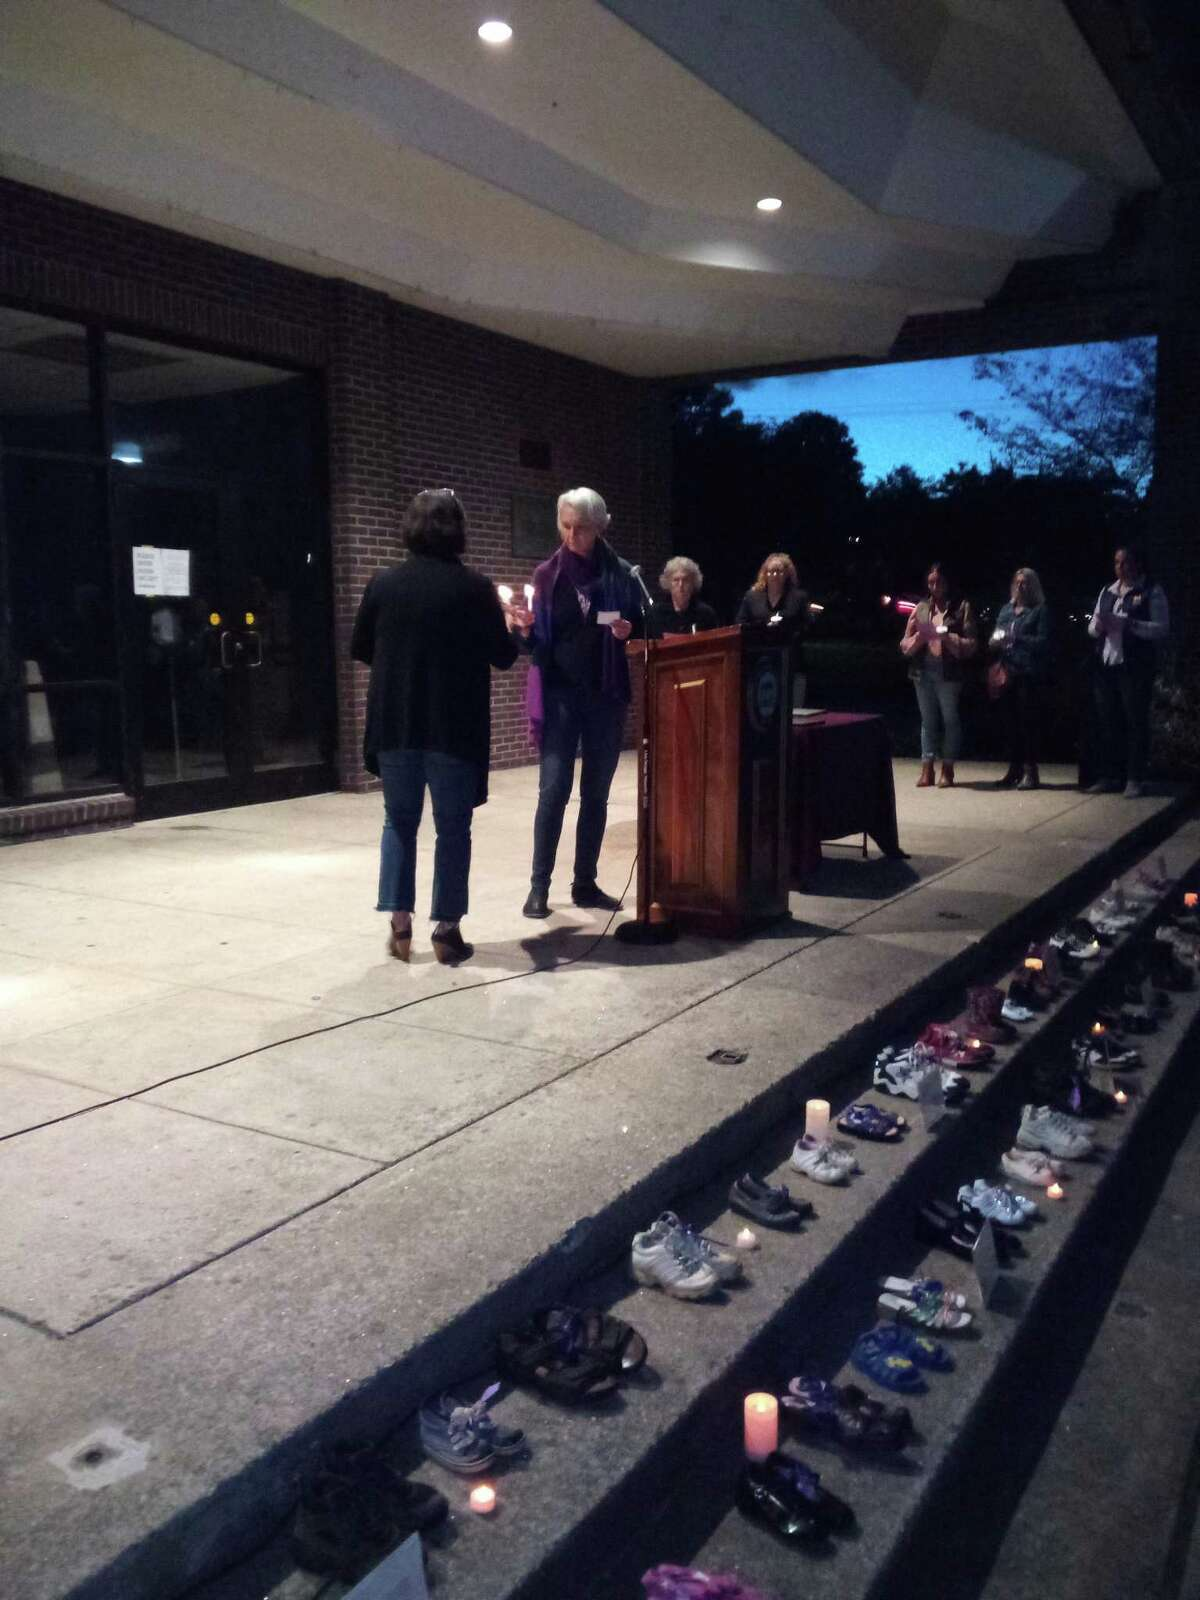 The Susan B. Anthony Project held its annual domestic violence awareness vigil Wednesday night at Coe Memorial Park. State Rep. Maria Horn, center, lights a candle during the vigil after reading a victim's name.